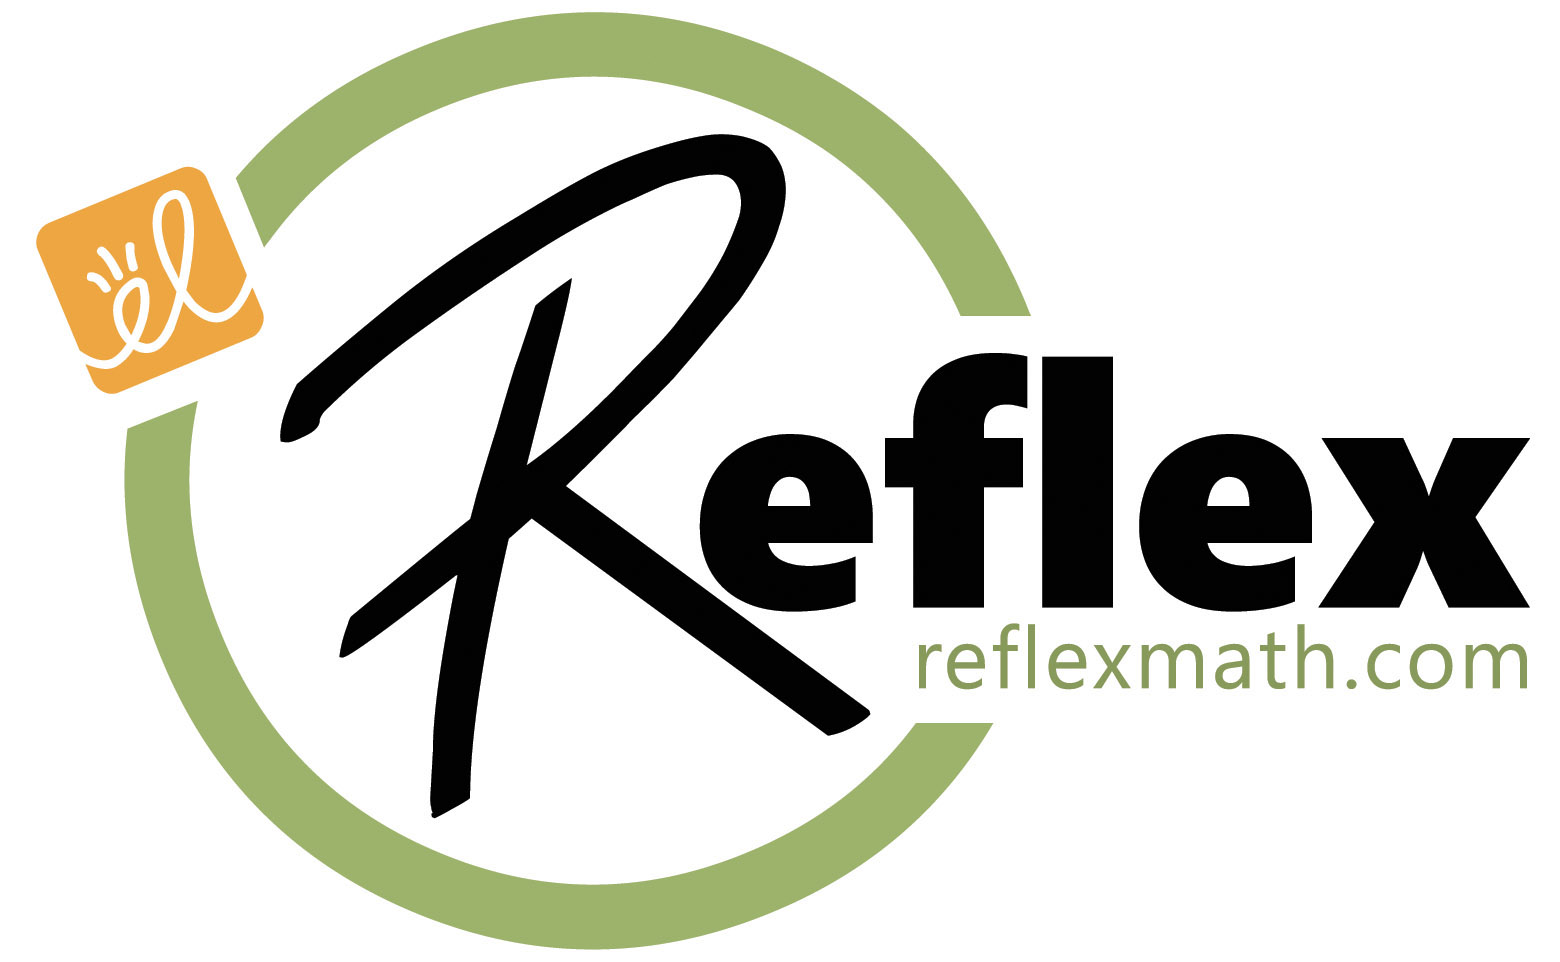 Image result for reflex math logo